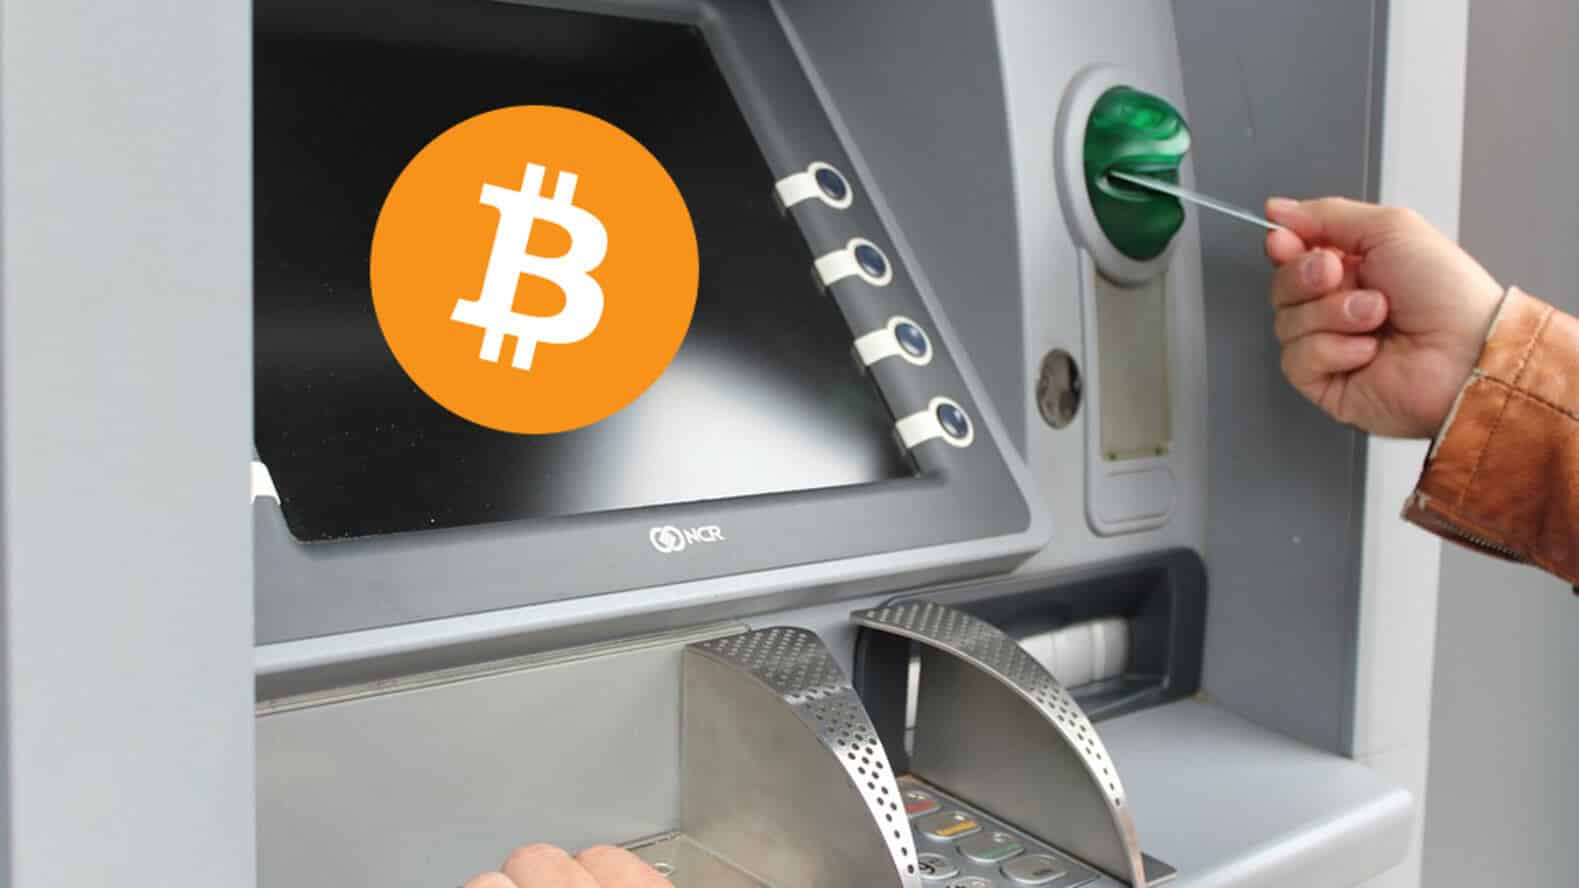 https://cryptolighty.com/installation-of-cryptocurrency-atm-machines/